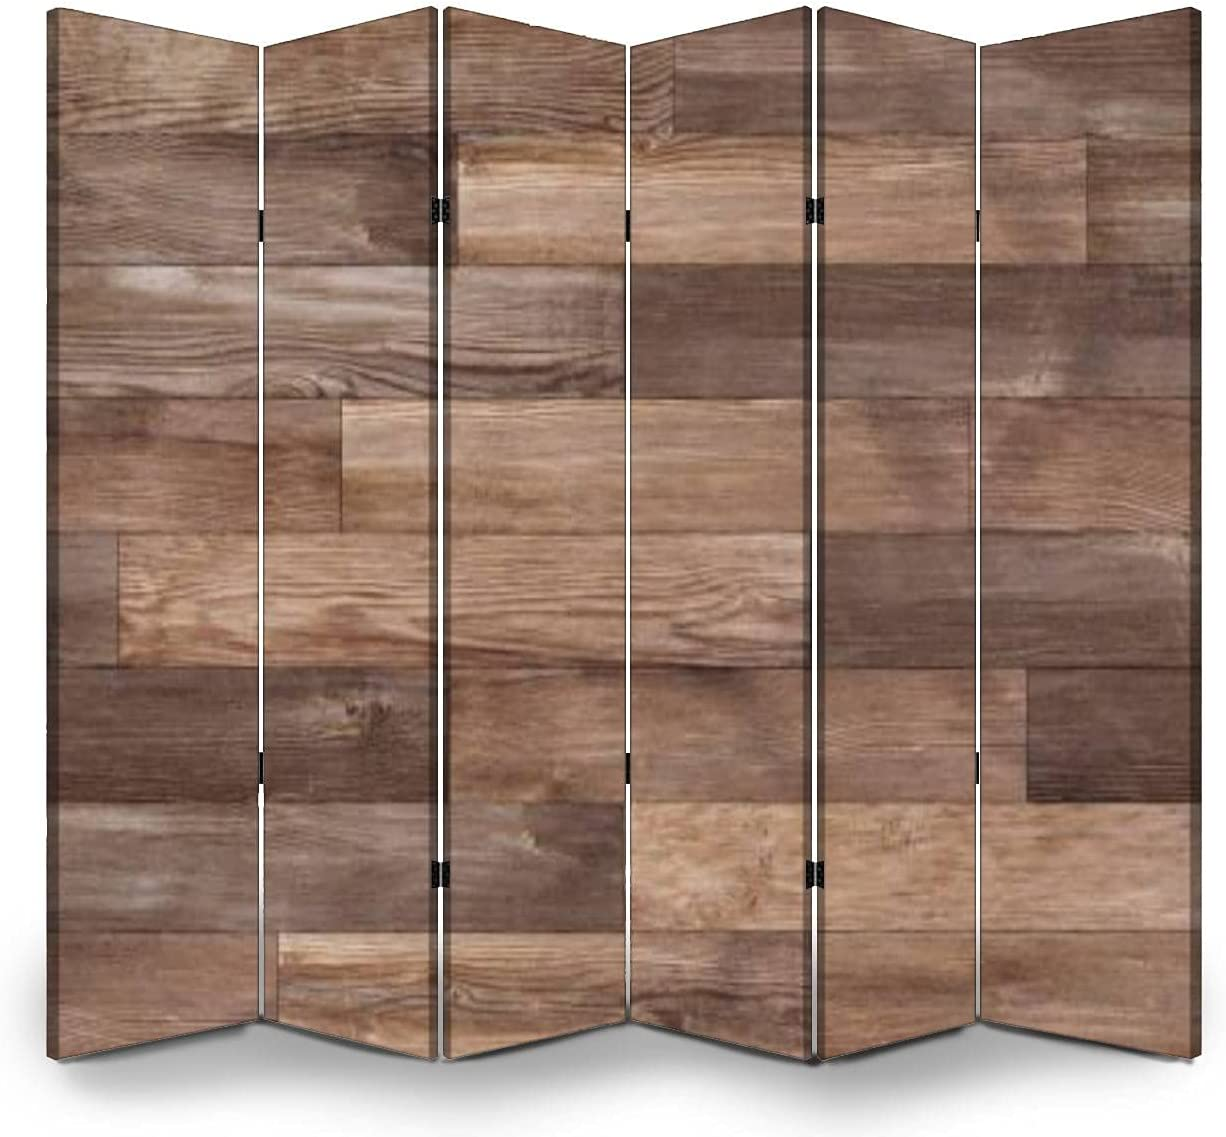 6 Panel Wall Popular product Divider Seamless Texture SEAL limited product Hardwood Wood Floor